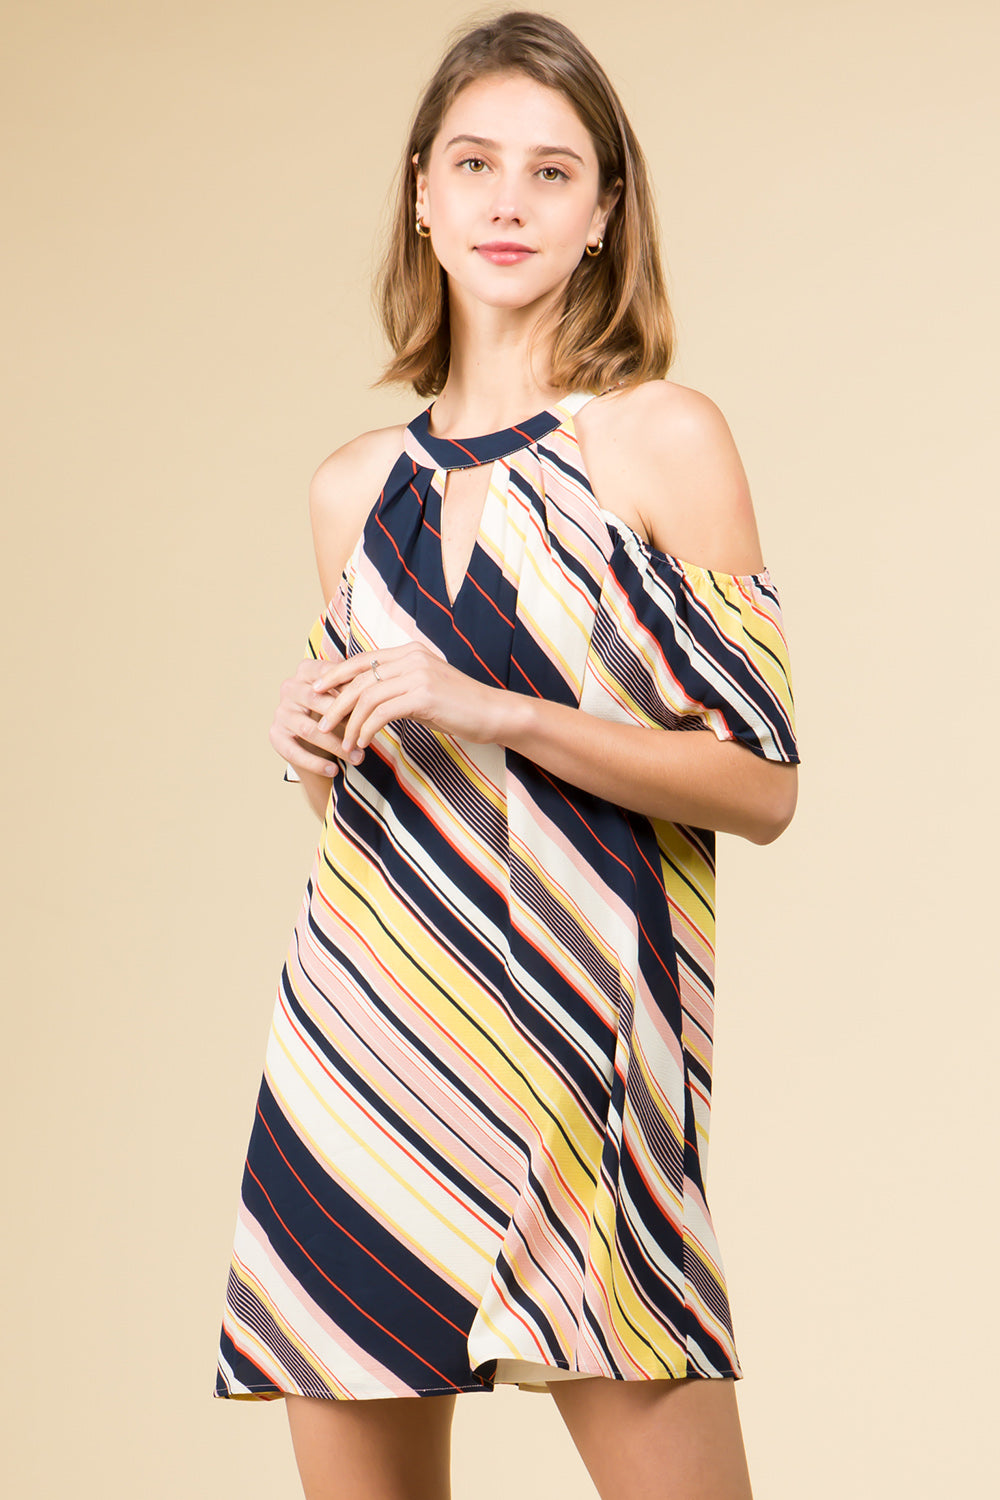 MID MODERN CENTURY STRIPED COLD SHOULDER DRESS WITH HIGH NECK